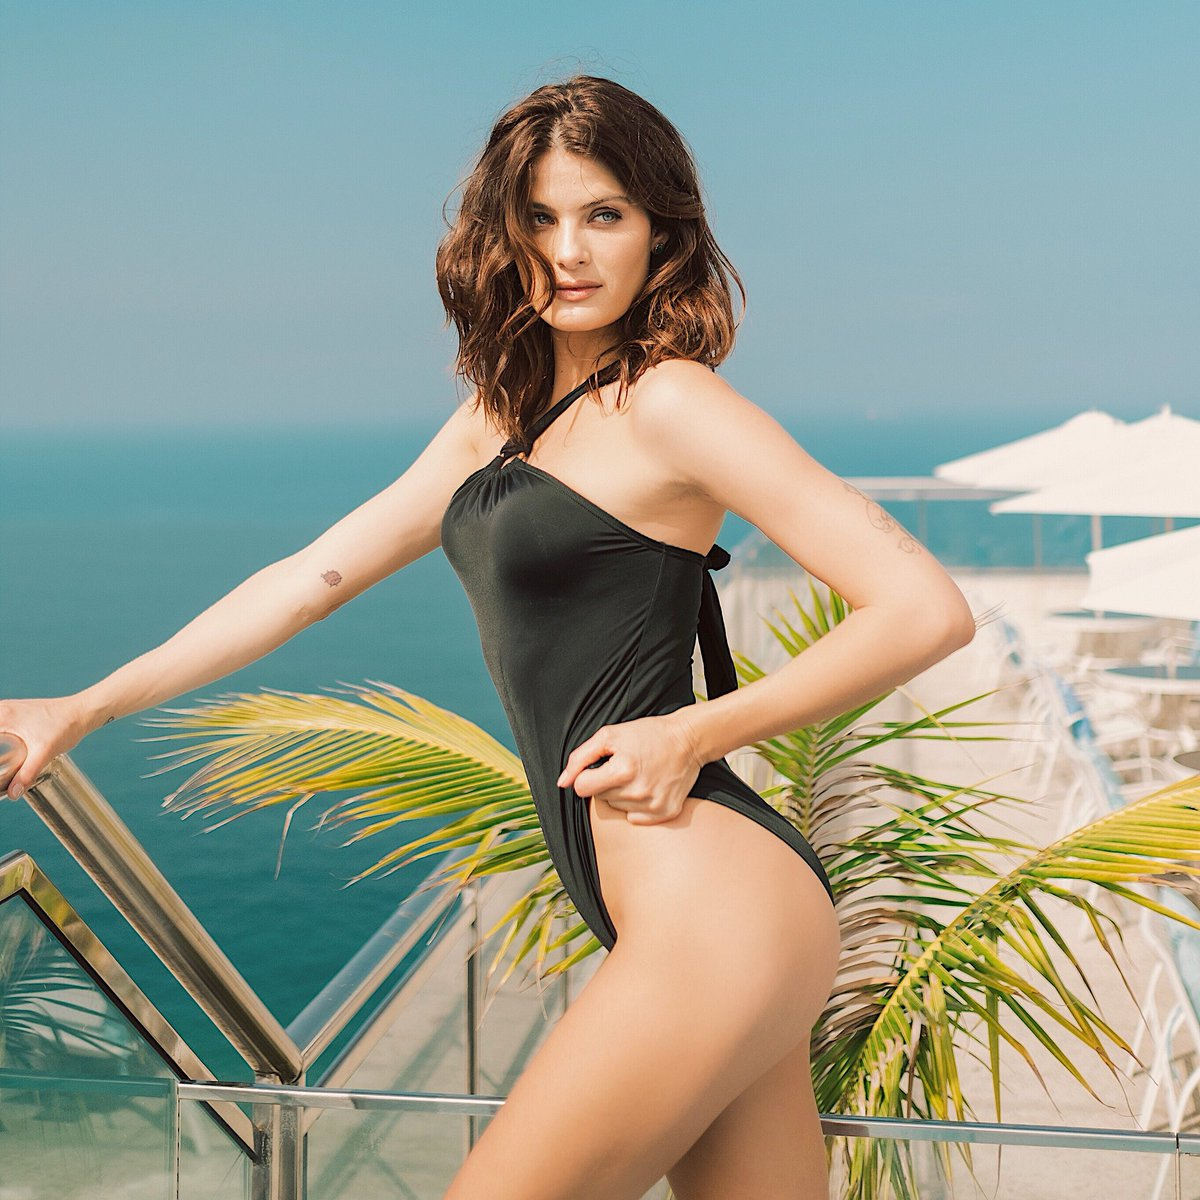 Isabeli Fontana nude (67 foto and video), Ass, Fappening, Selfie, in bikini 2015